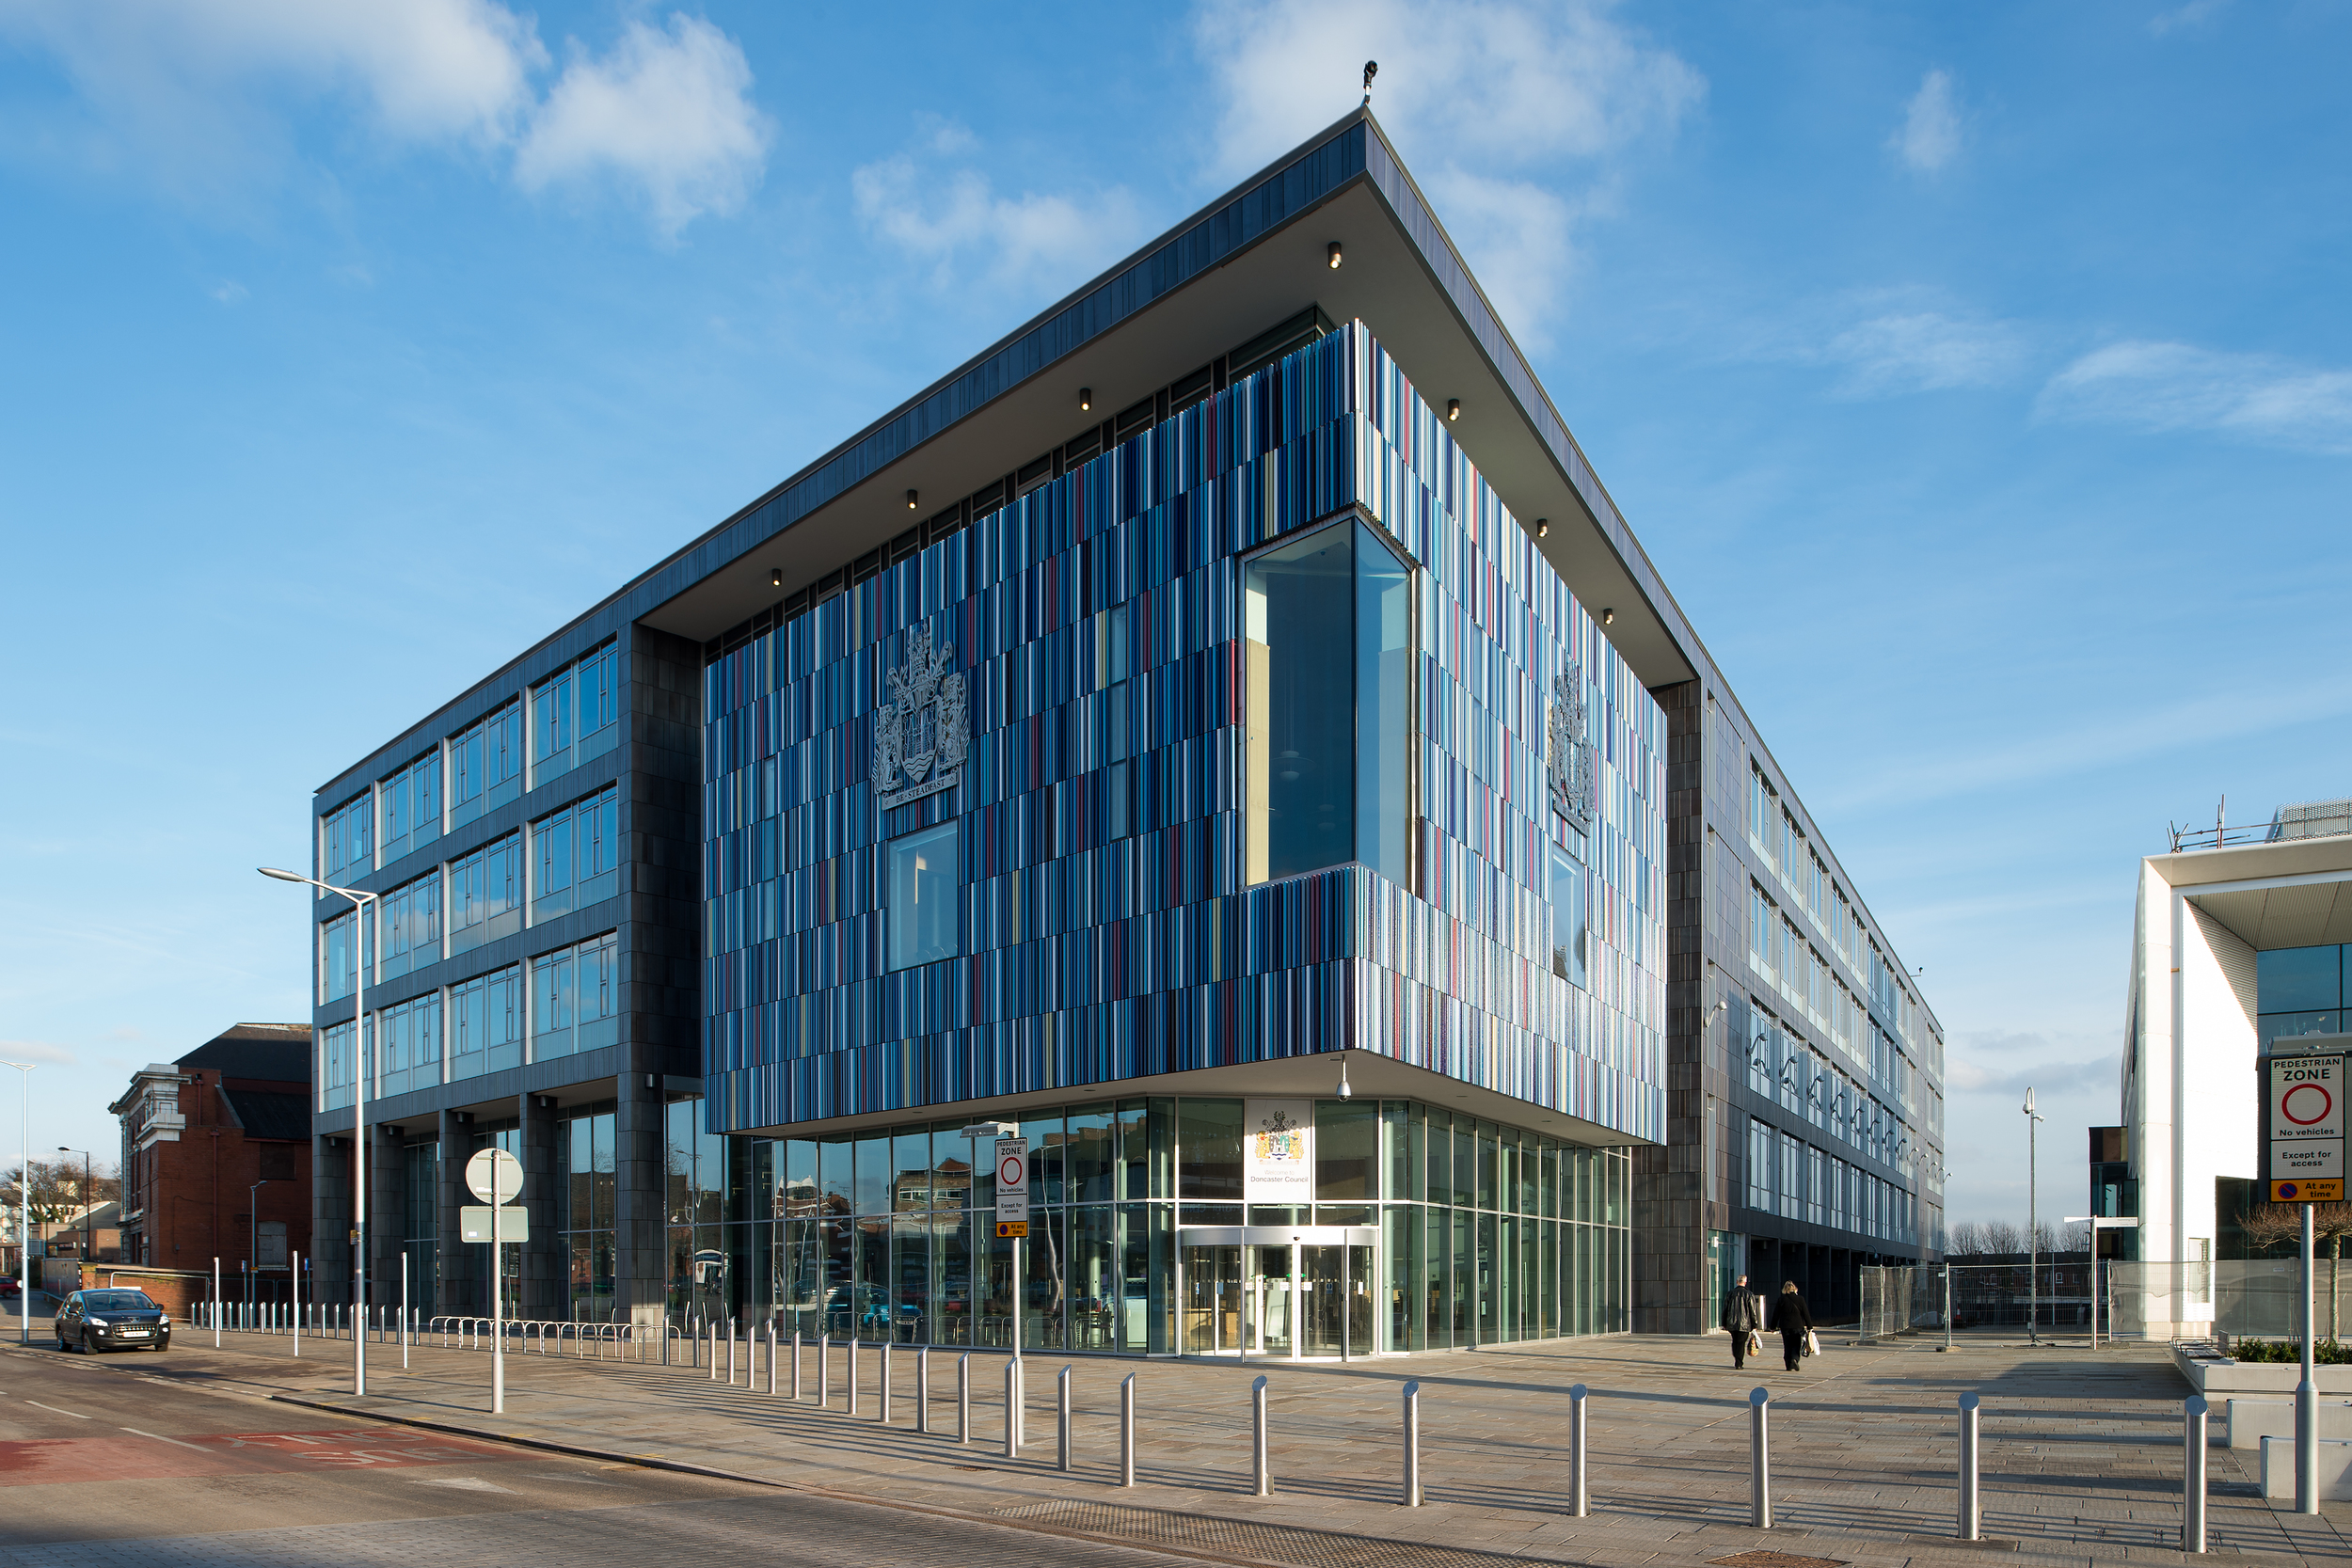 Doncaster Civic Offices | Architects: Cartwright Pickard | Main Contractor: Wates Construction